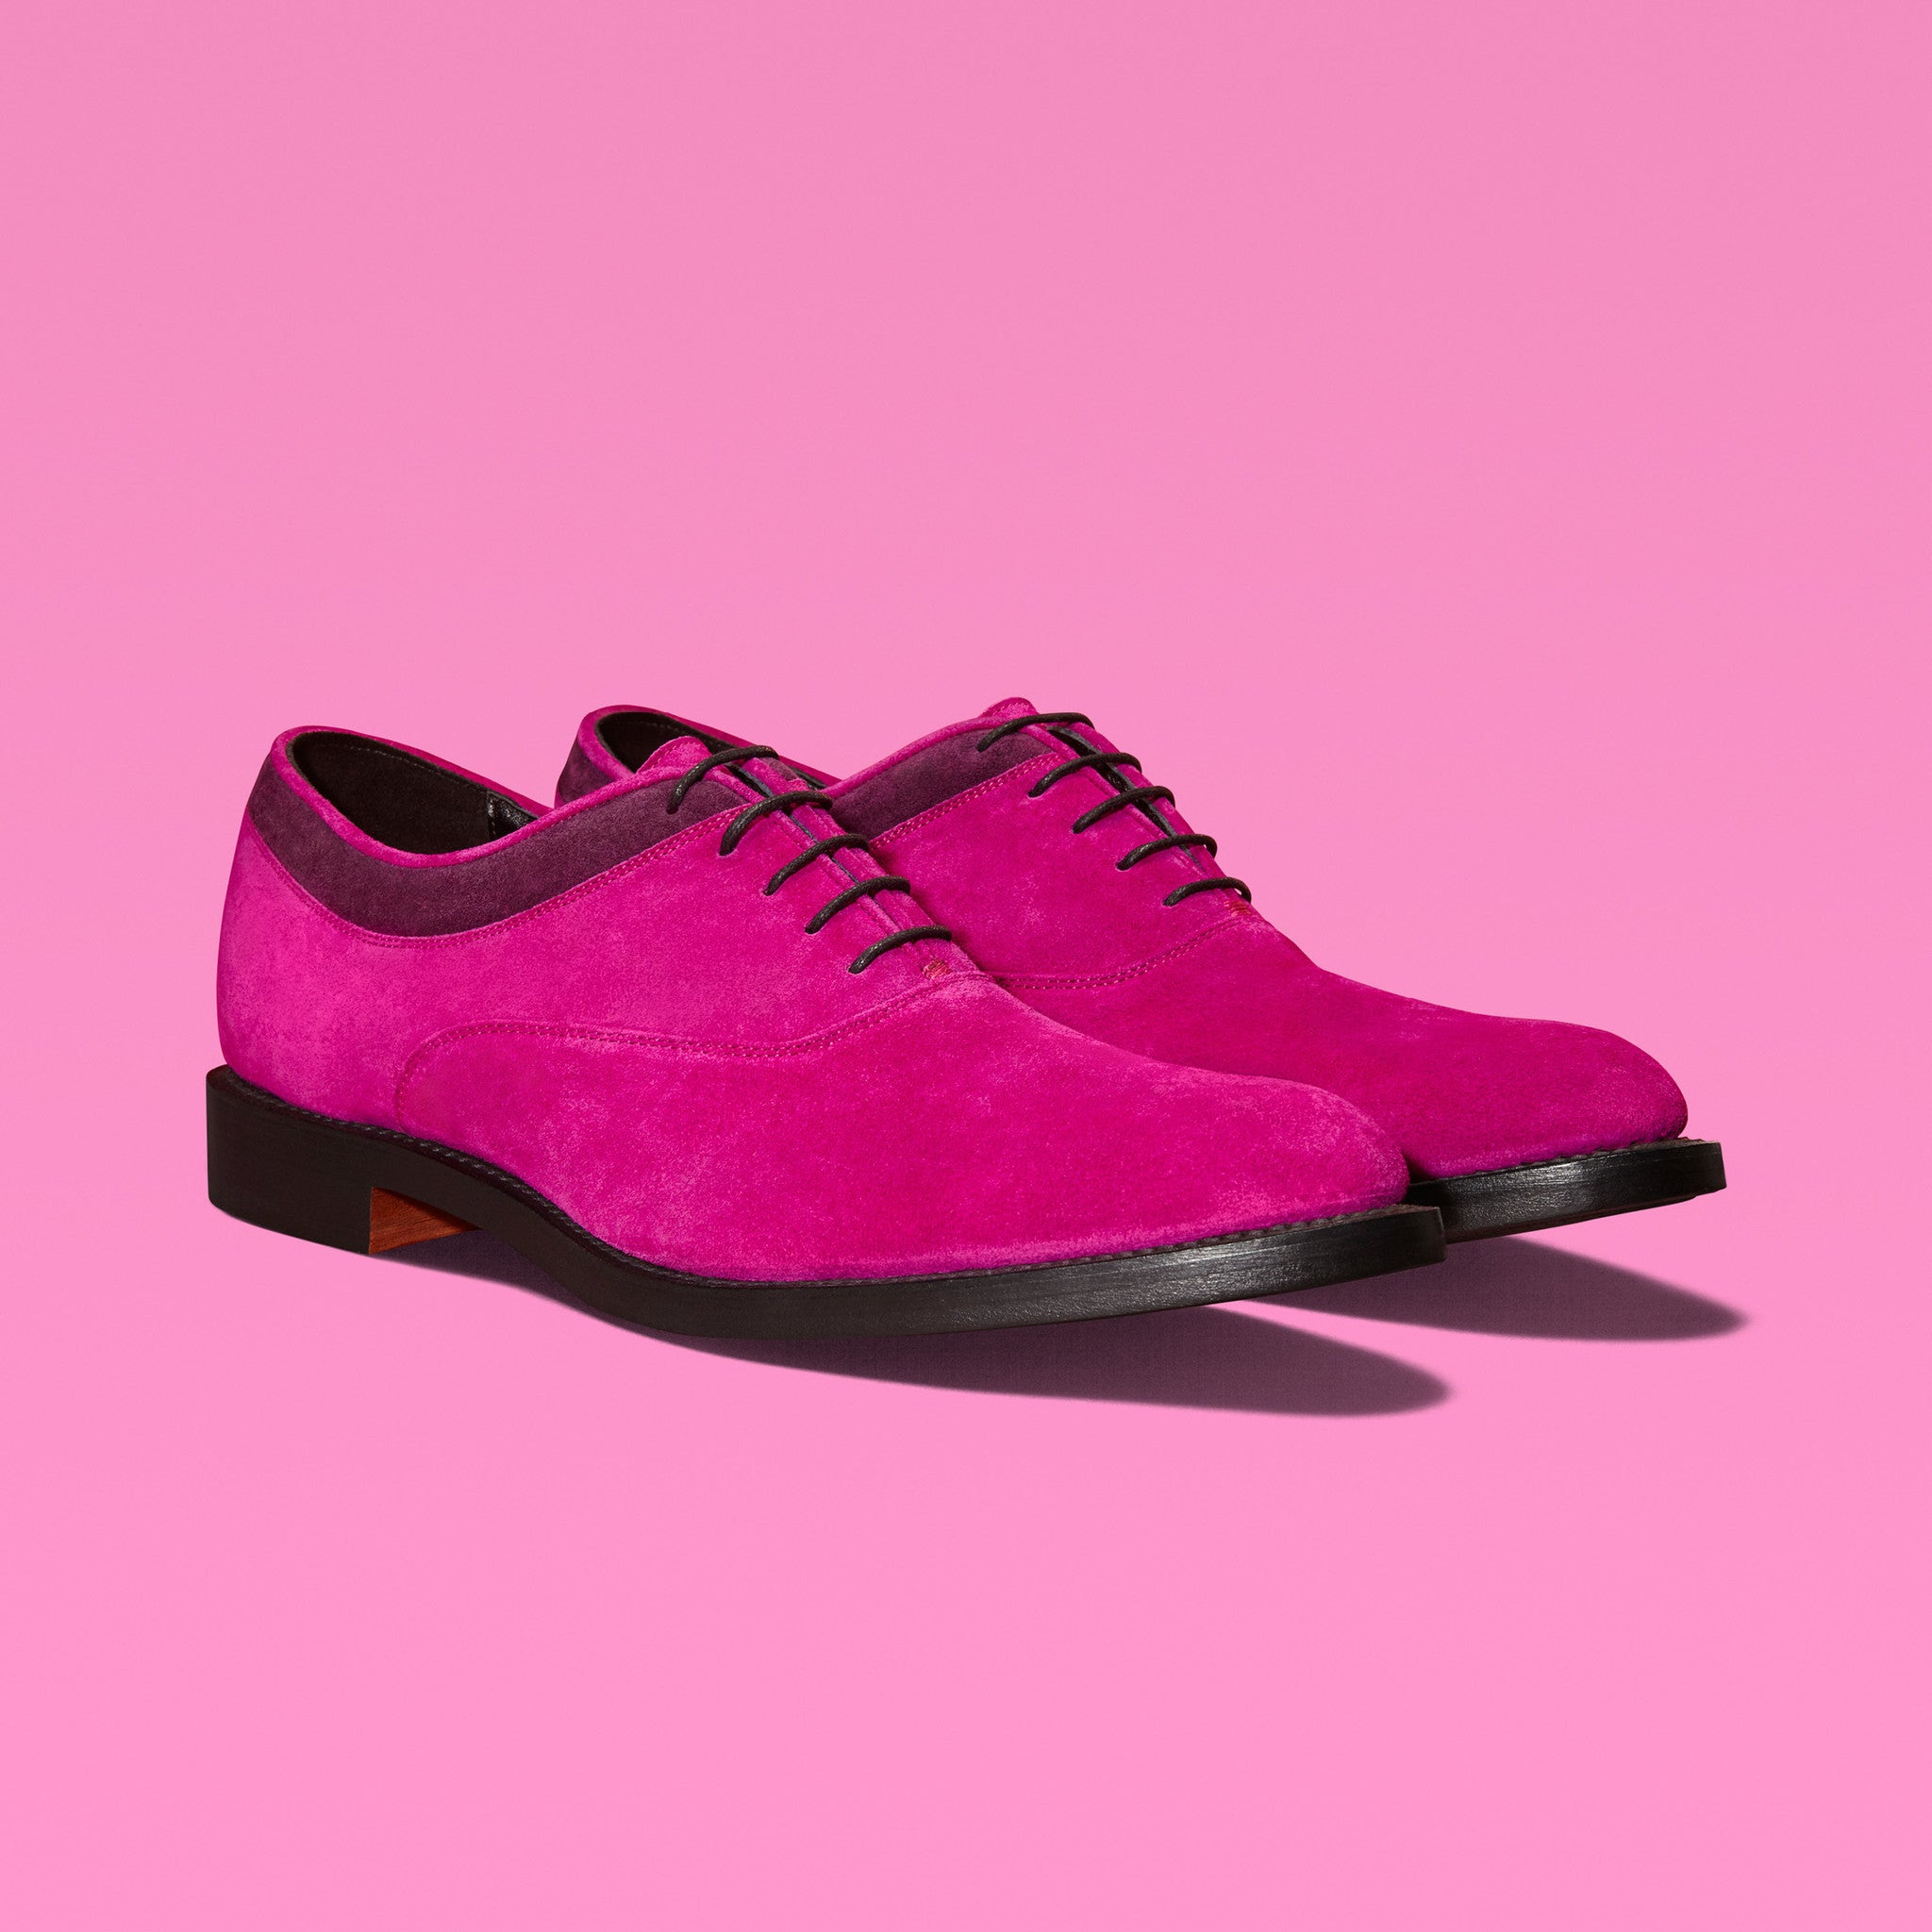 MAGNUS | Fuchsia Suede Oxford Shoes